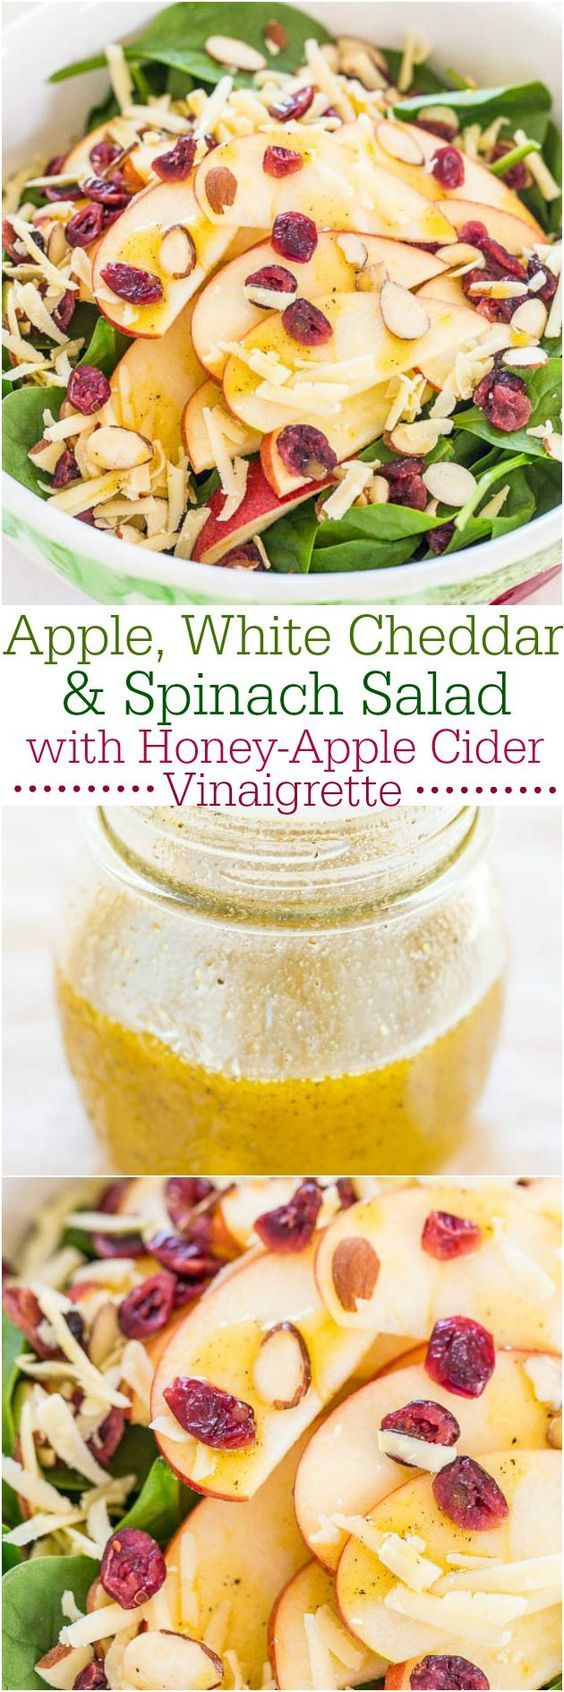 Apple White Cheddar and Spinach Salad with Honey-Apple Cider ...